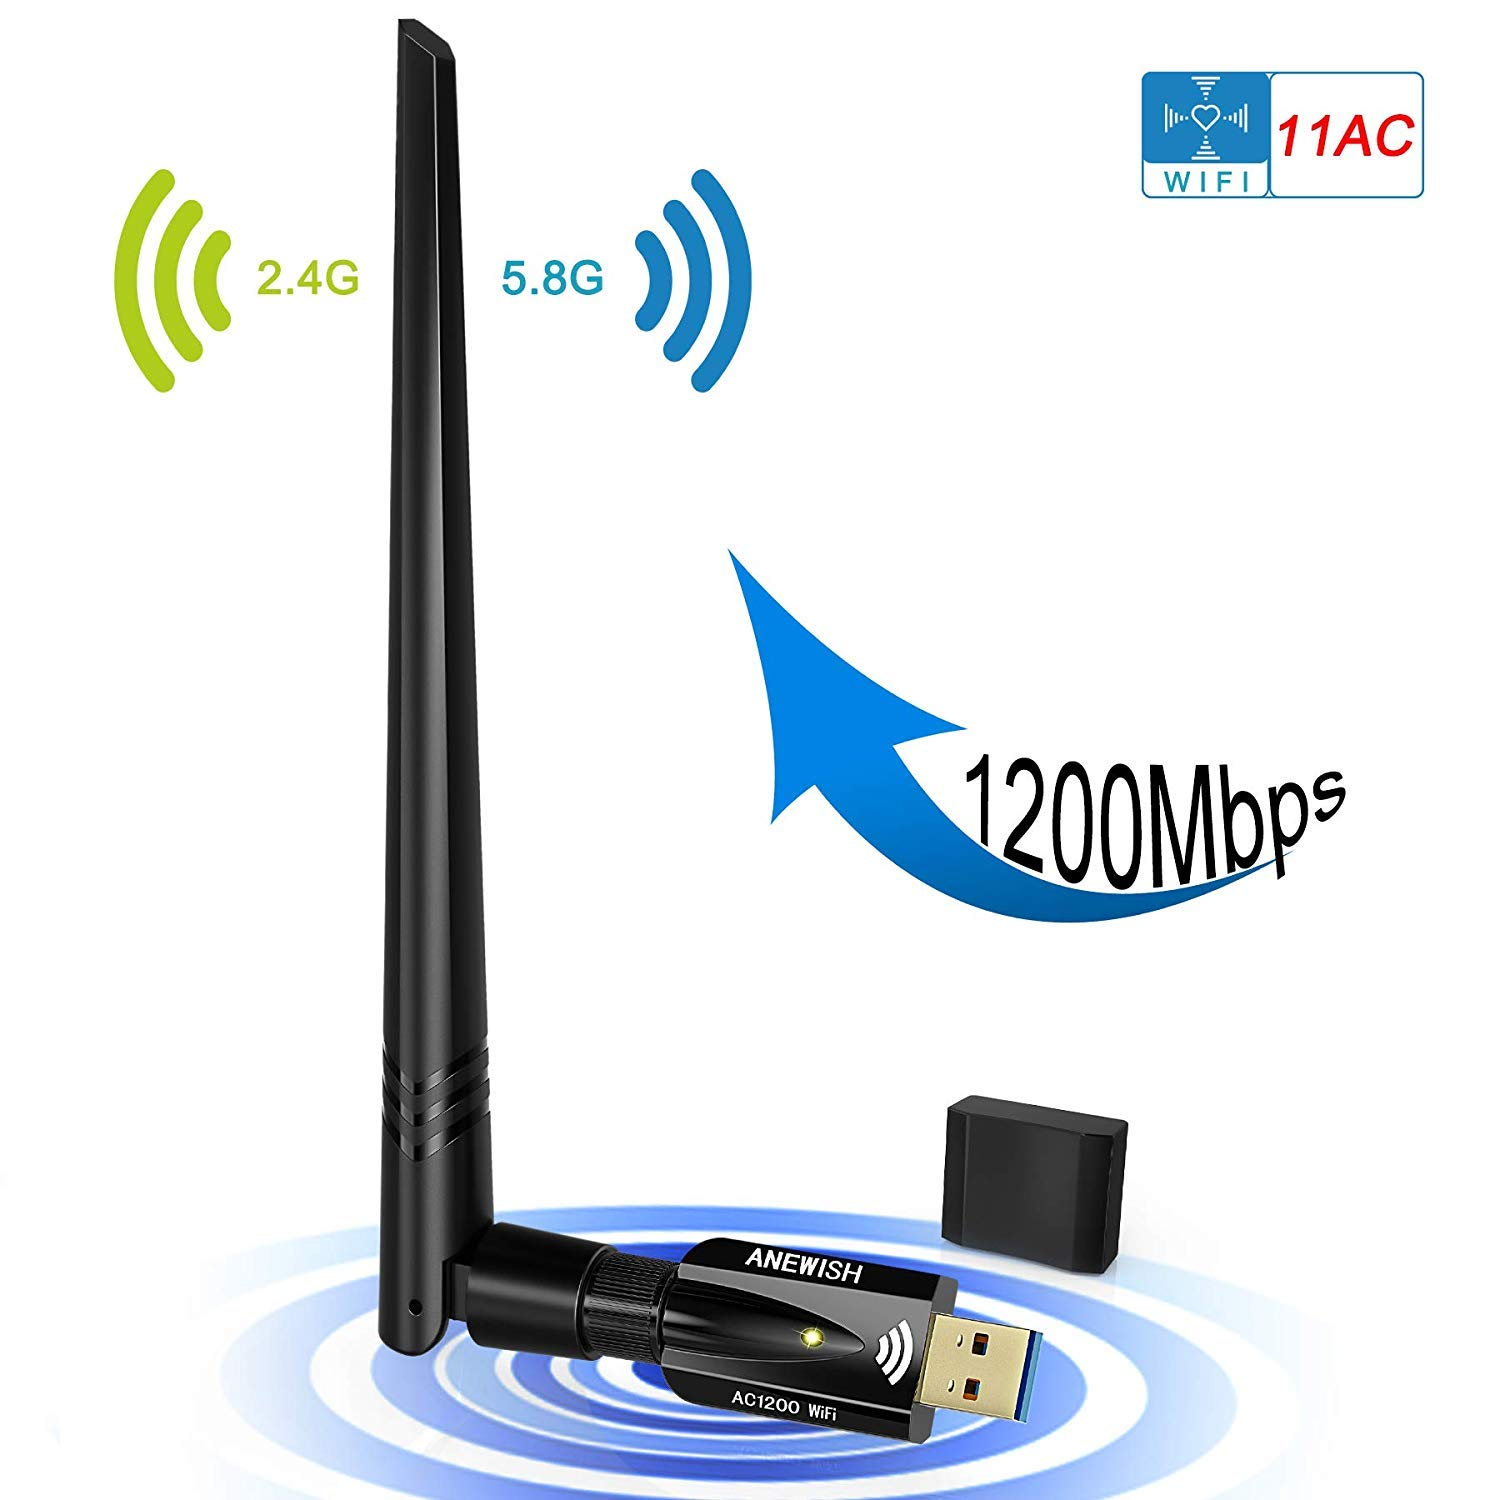 USB WiFi Adapter 1200Mbps, ANEWISH Wireless Adapter USB3.0 Dual Band 11ac(2.4GHz/300Mbps 5GHz/867Mbps) Network LAN Card Dongle for PC Desktop Laptop, Supports Windows, Mac and Linux